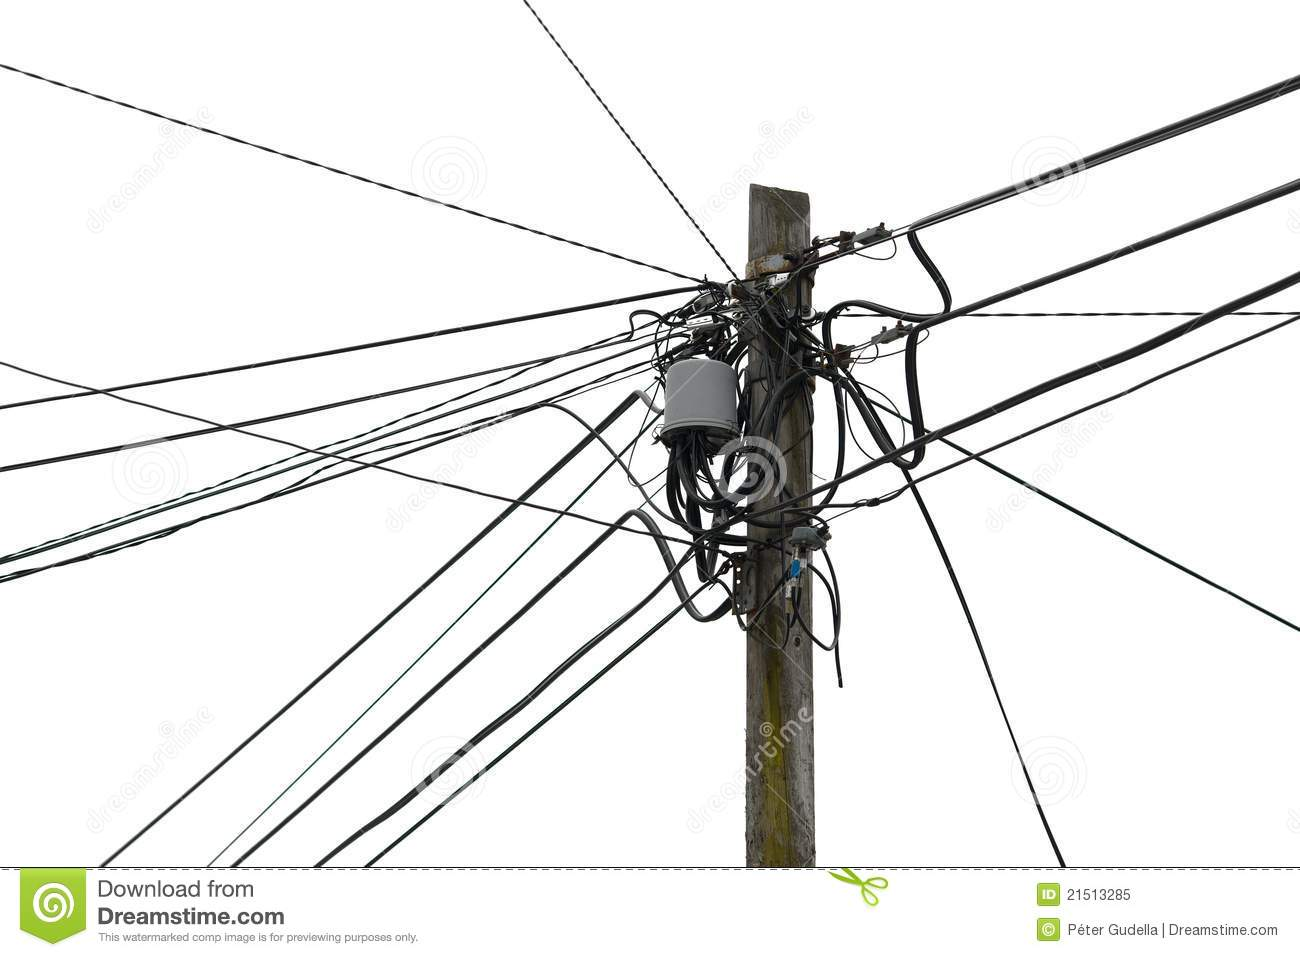 Wires Royalty Free Stock Photo